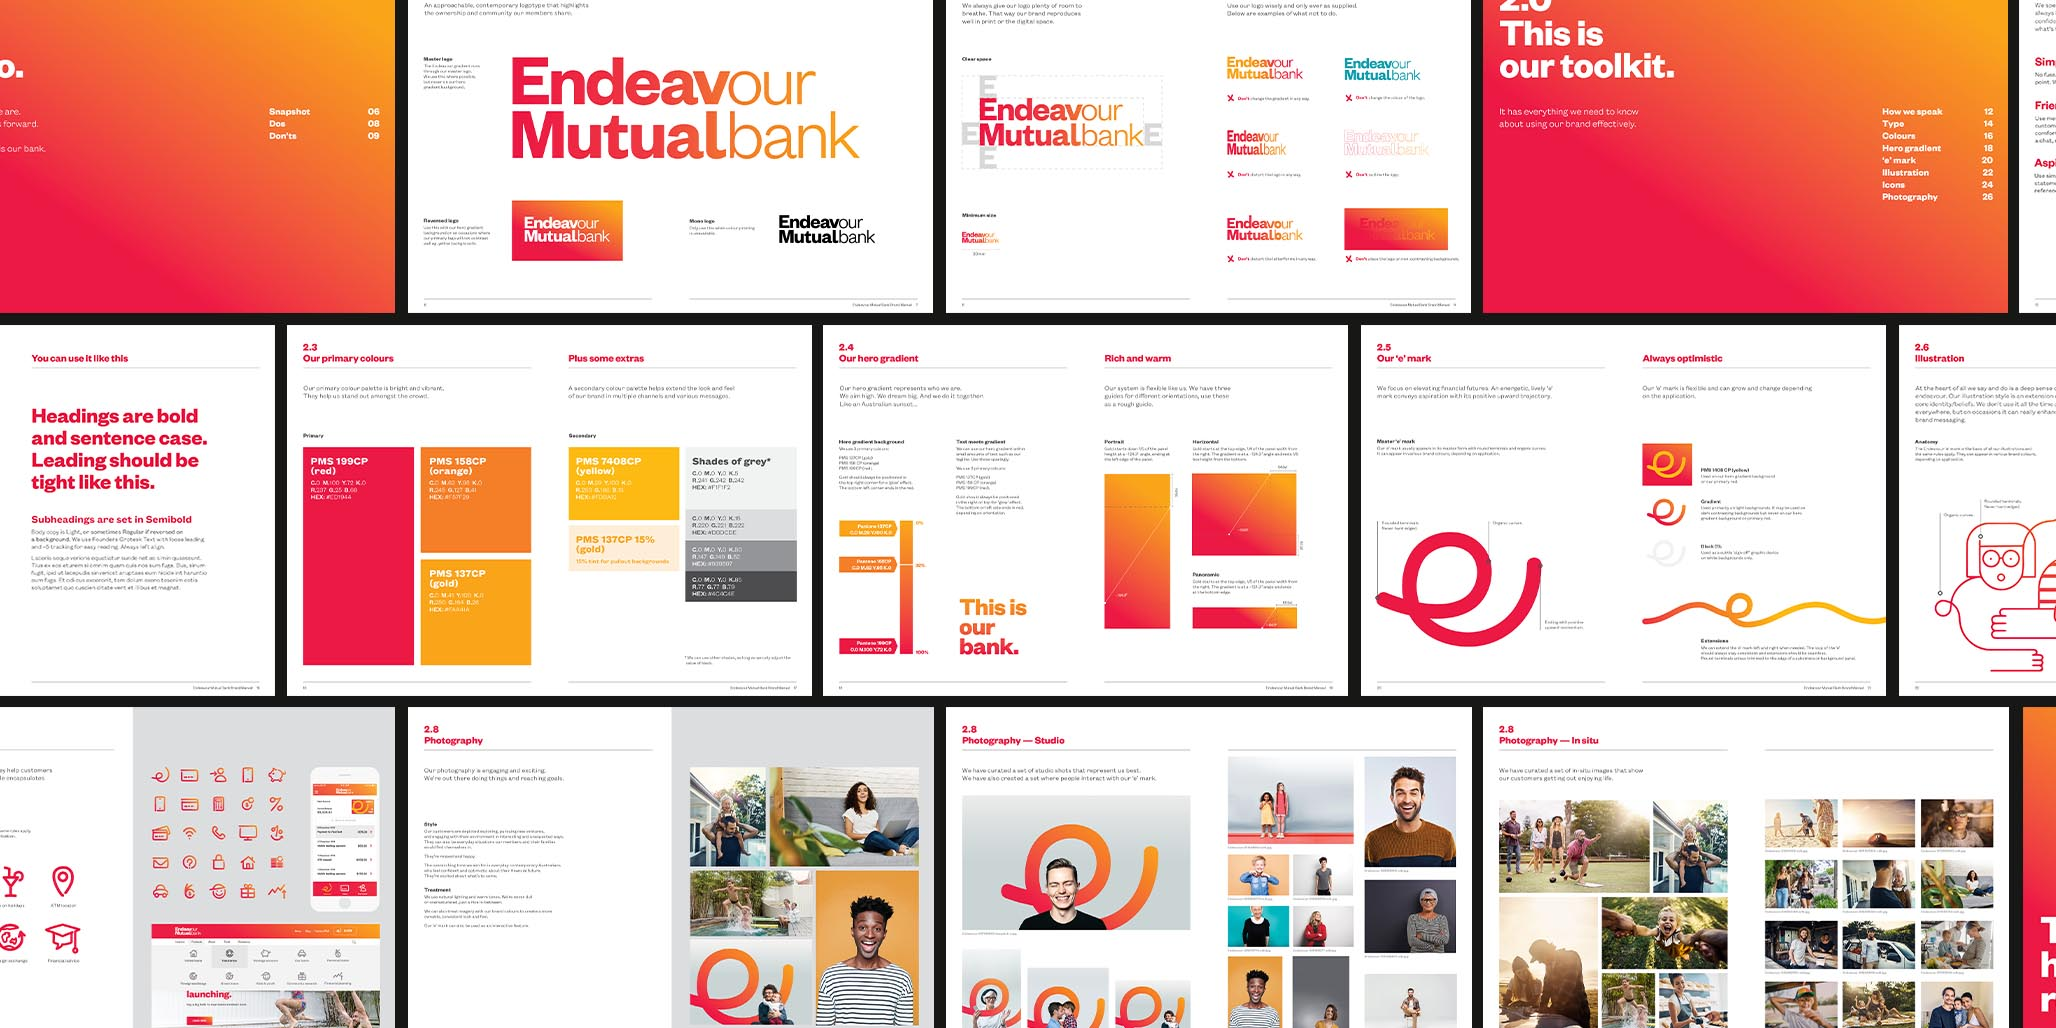 Rebranding, Brand Identity Design & Roll-out project for financial services company, Endeavour Mutual Bank, Sydney, Australia, image F